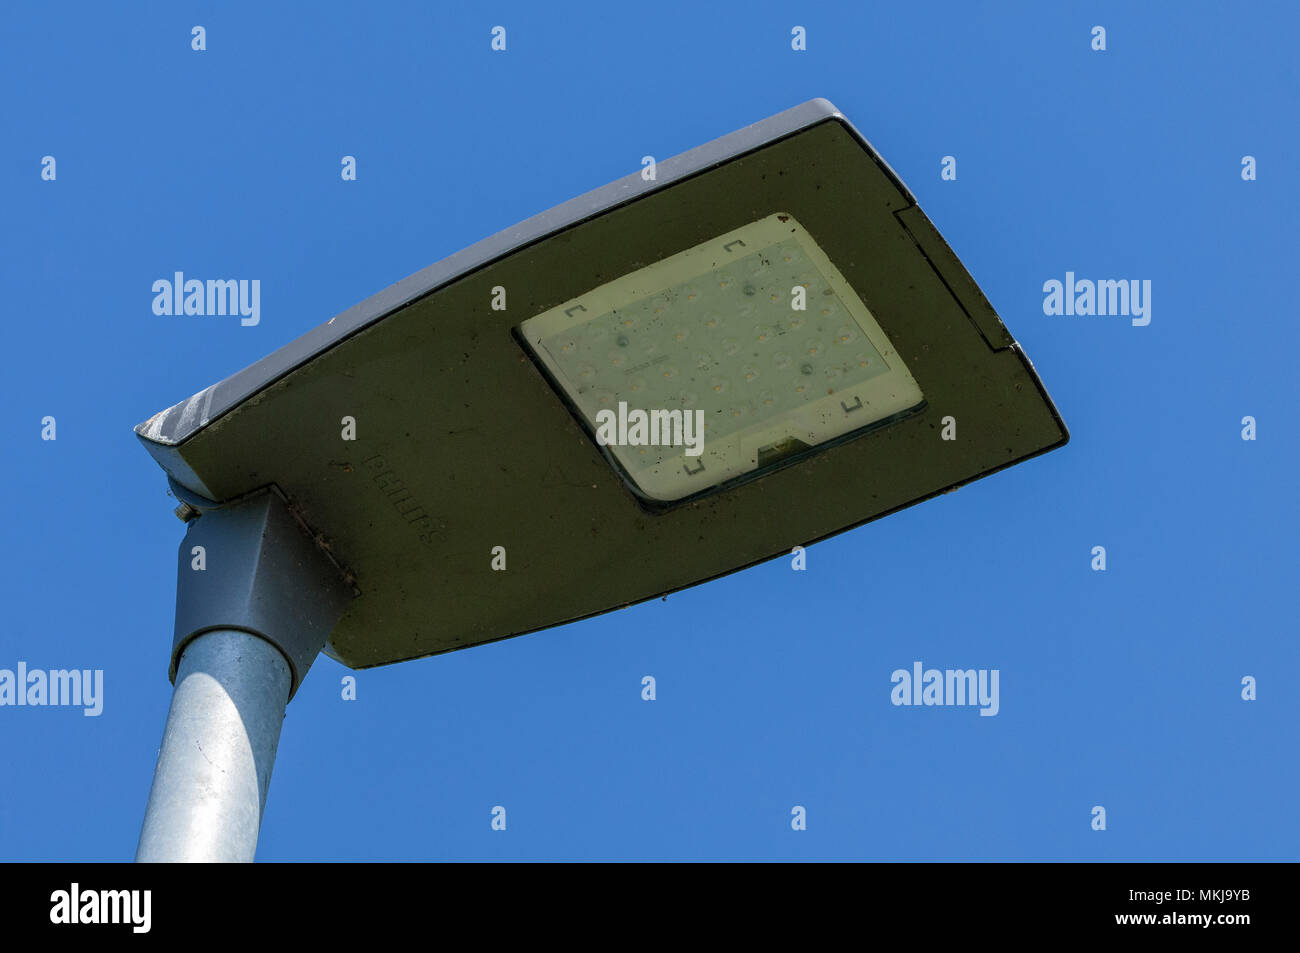 LED streetlight streetlamp street light - Stock Image